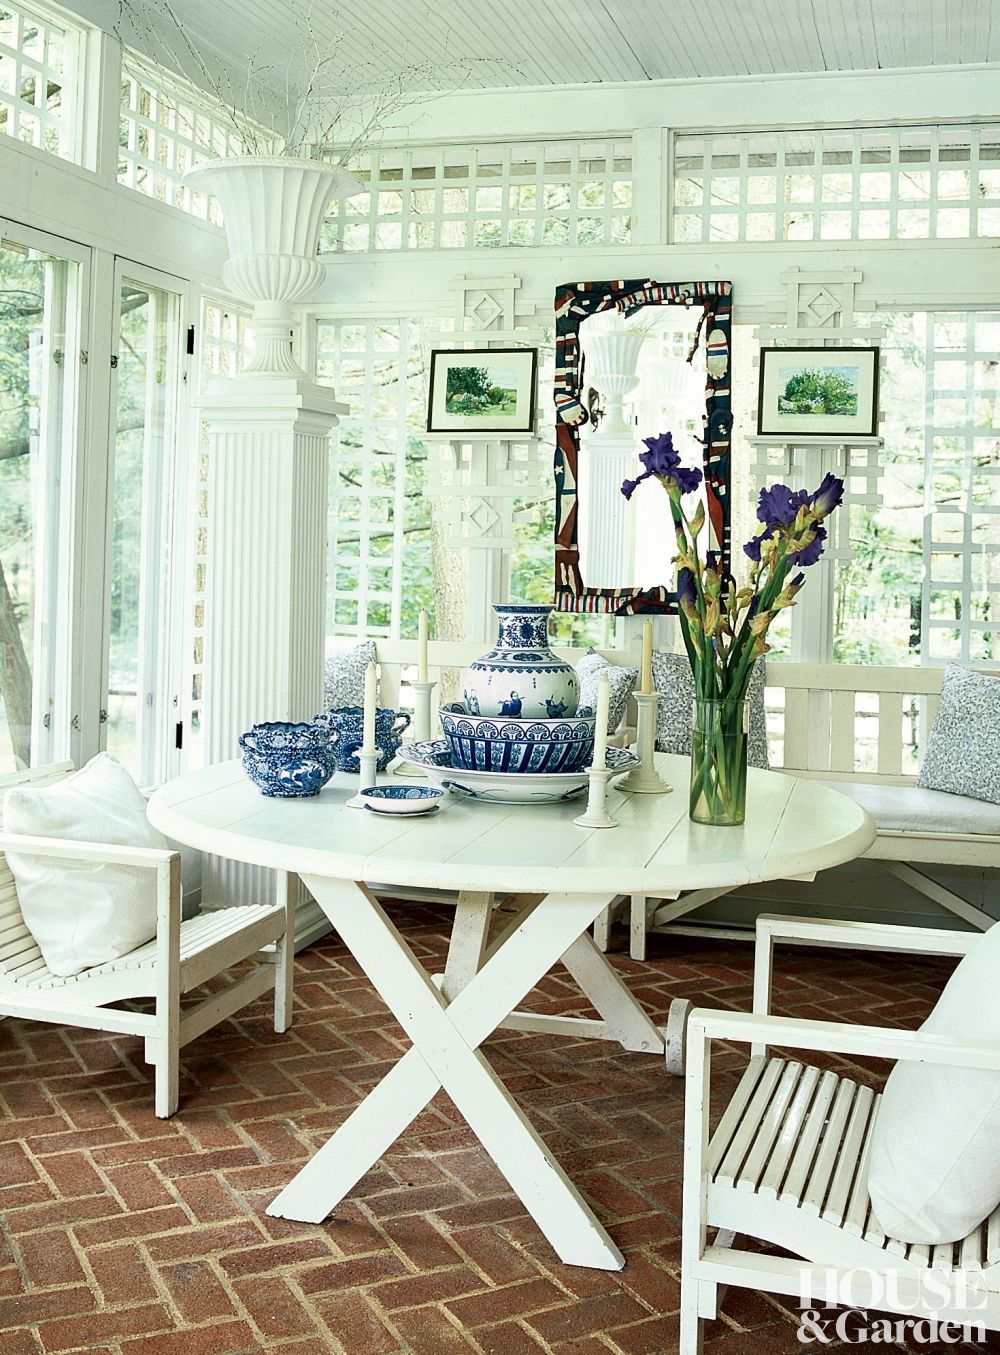 Glass and plaster trellis walls enclose a porch at designer Sheila Camera Kotur's family home in Massachusetts. Vintage garden furniture is accented with pillows.